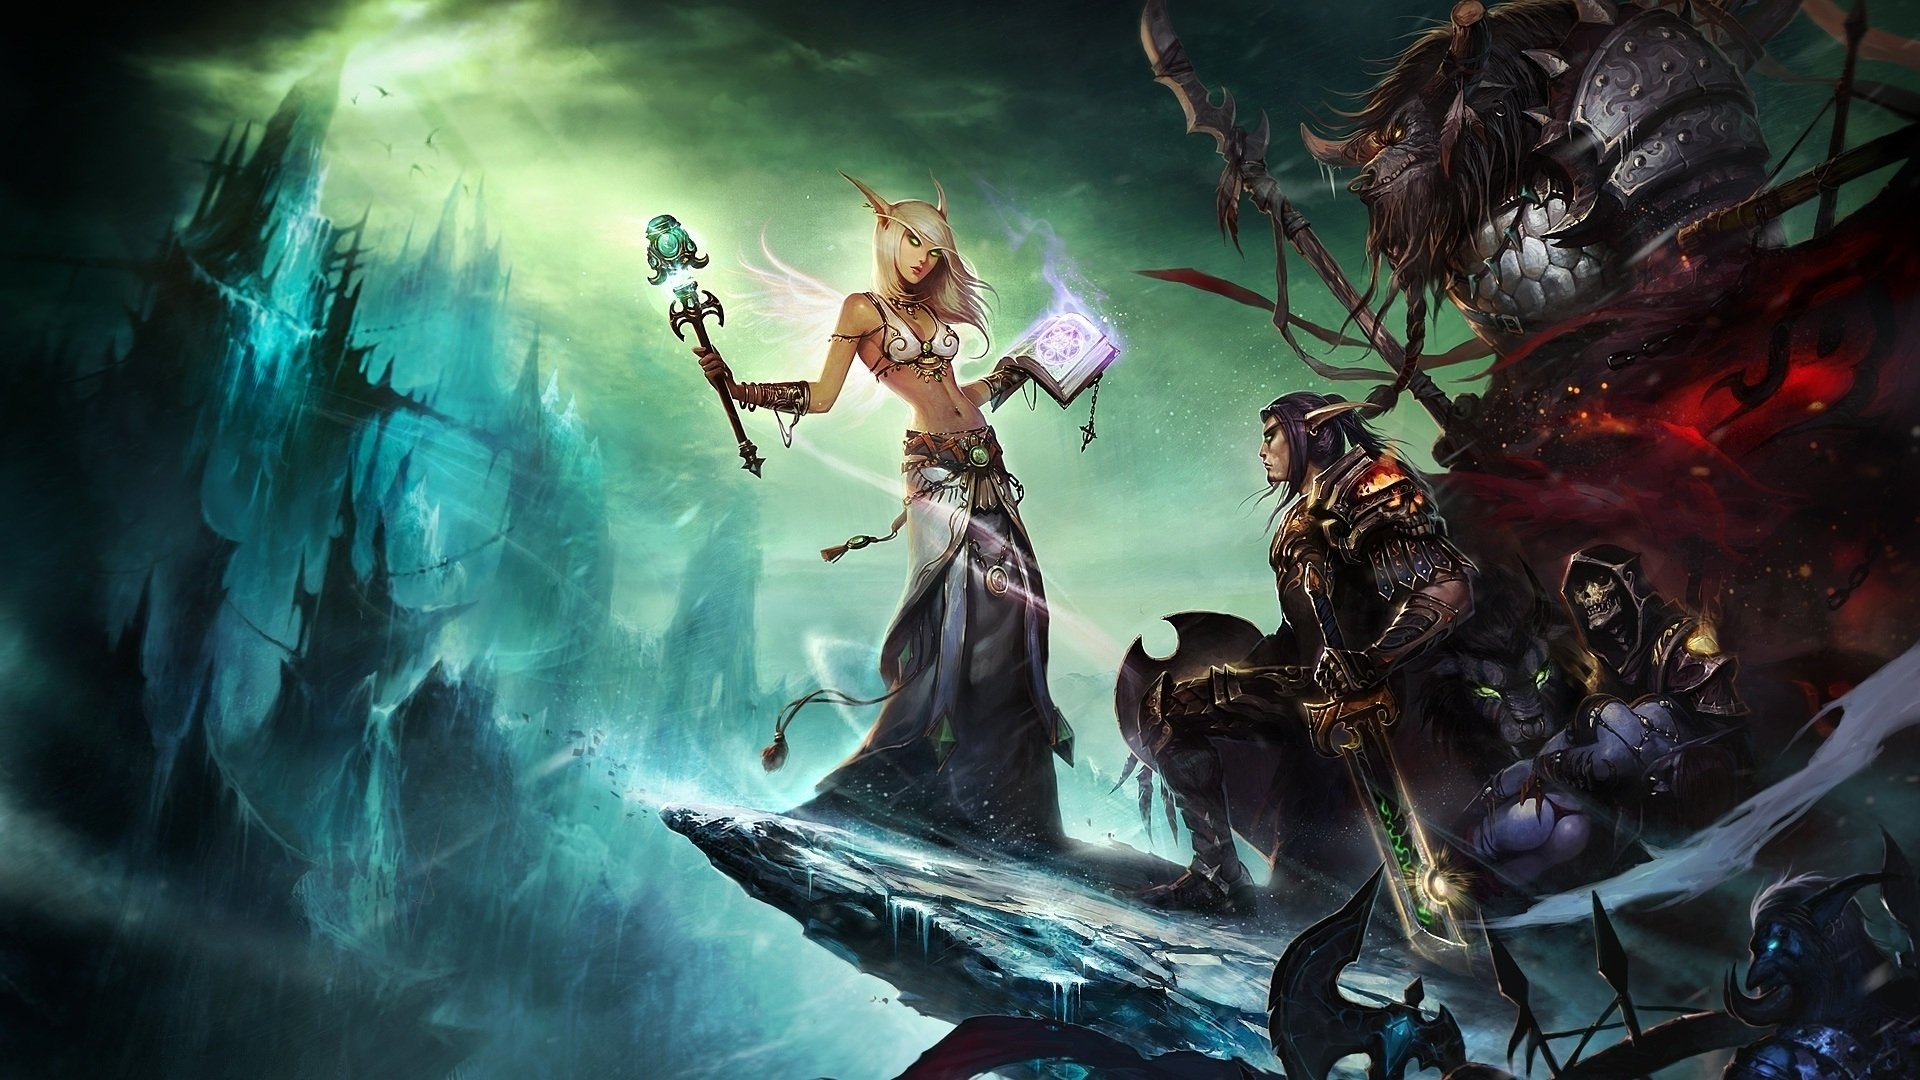 World Of Warcraft Wallpaper 1920x1080 Hd Posted By Zoey Anderson